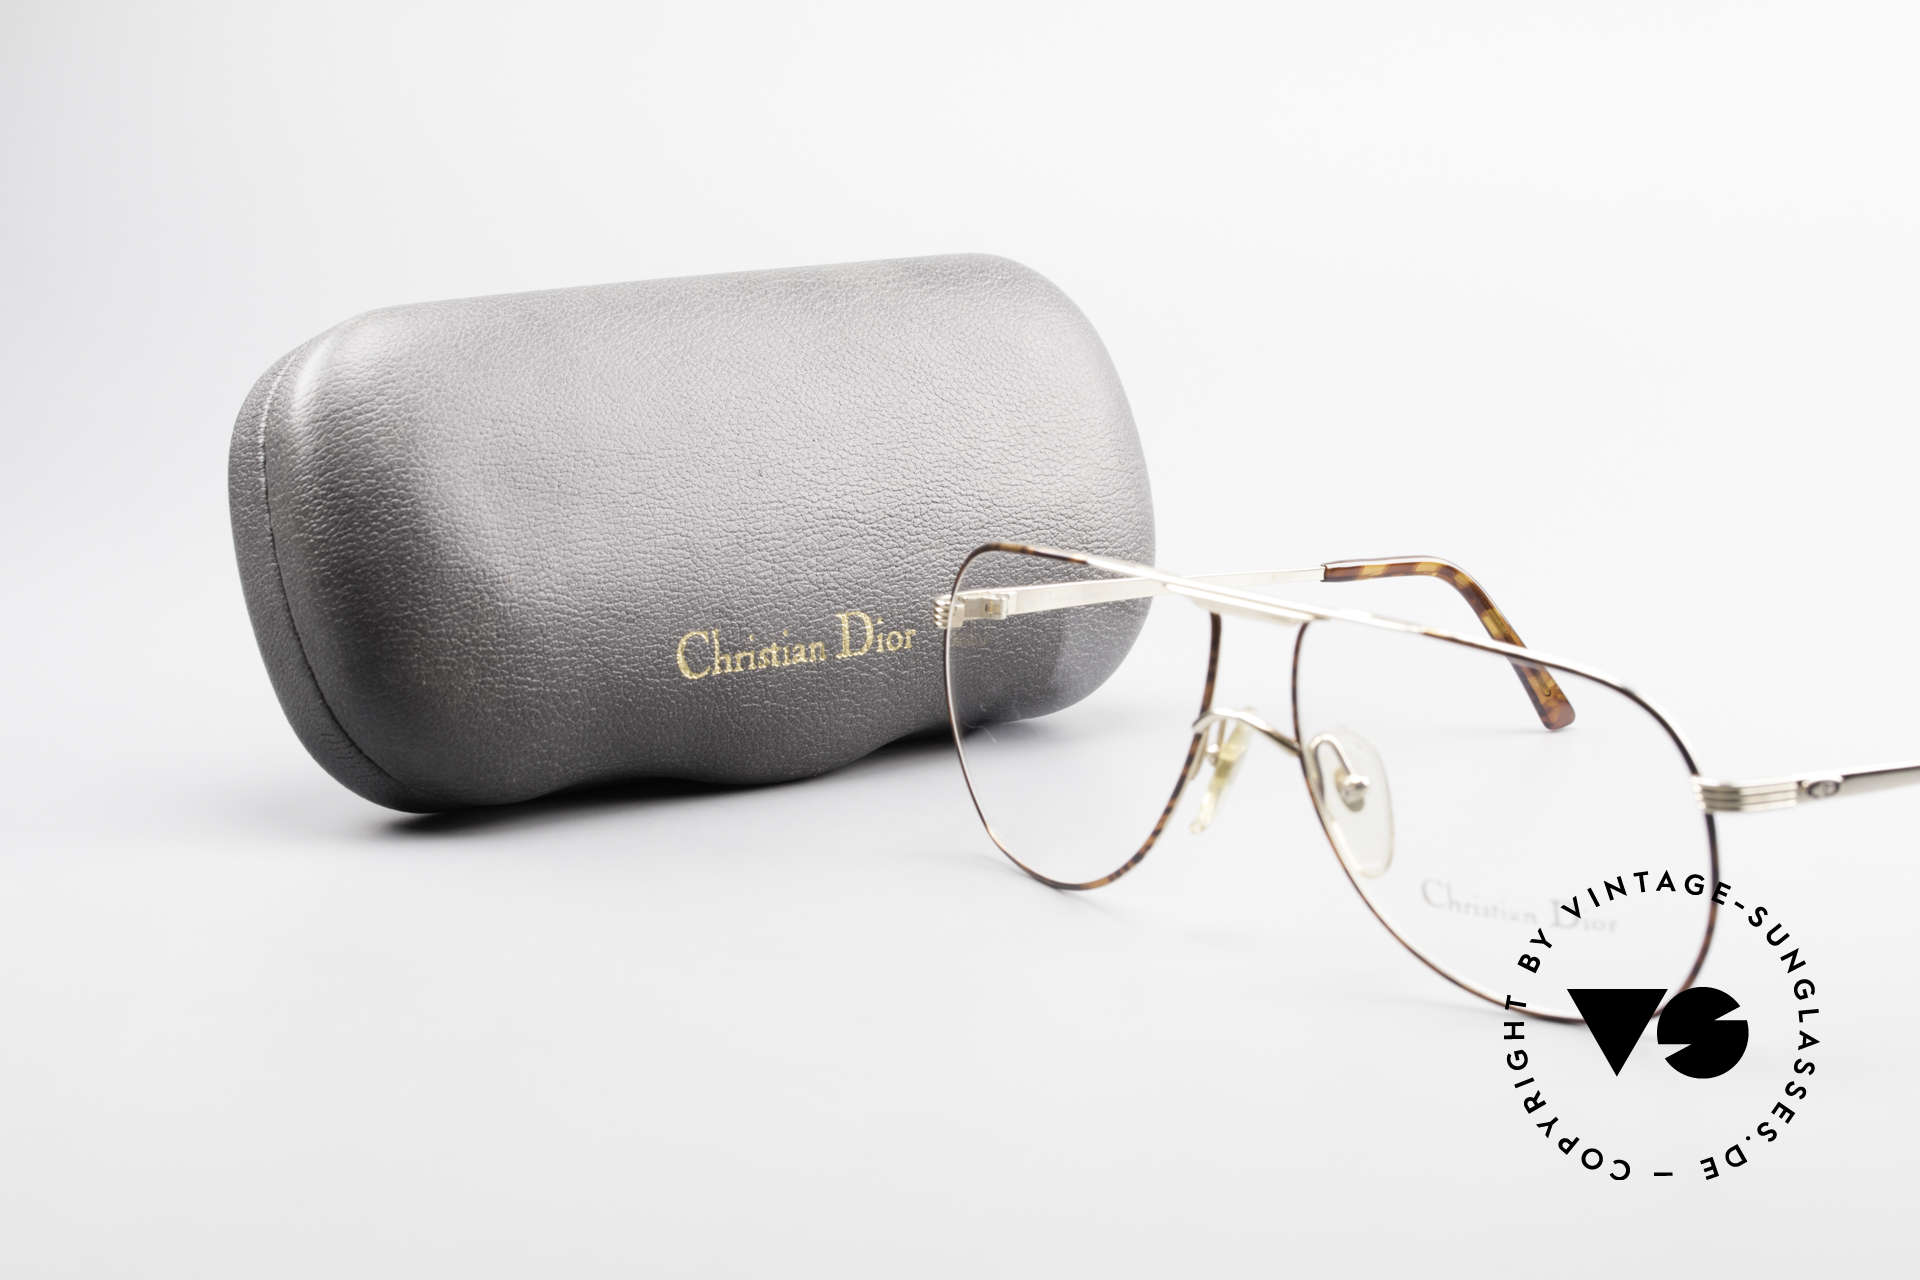 Christian Dior 2553 Vintage Glasses Aviator Style, the metal frame is made for lenses of any kind, Made for Men